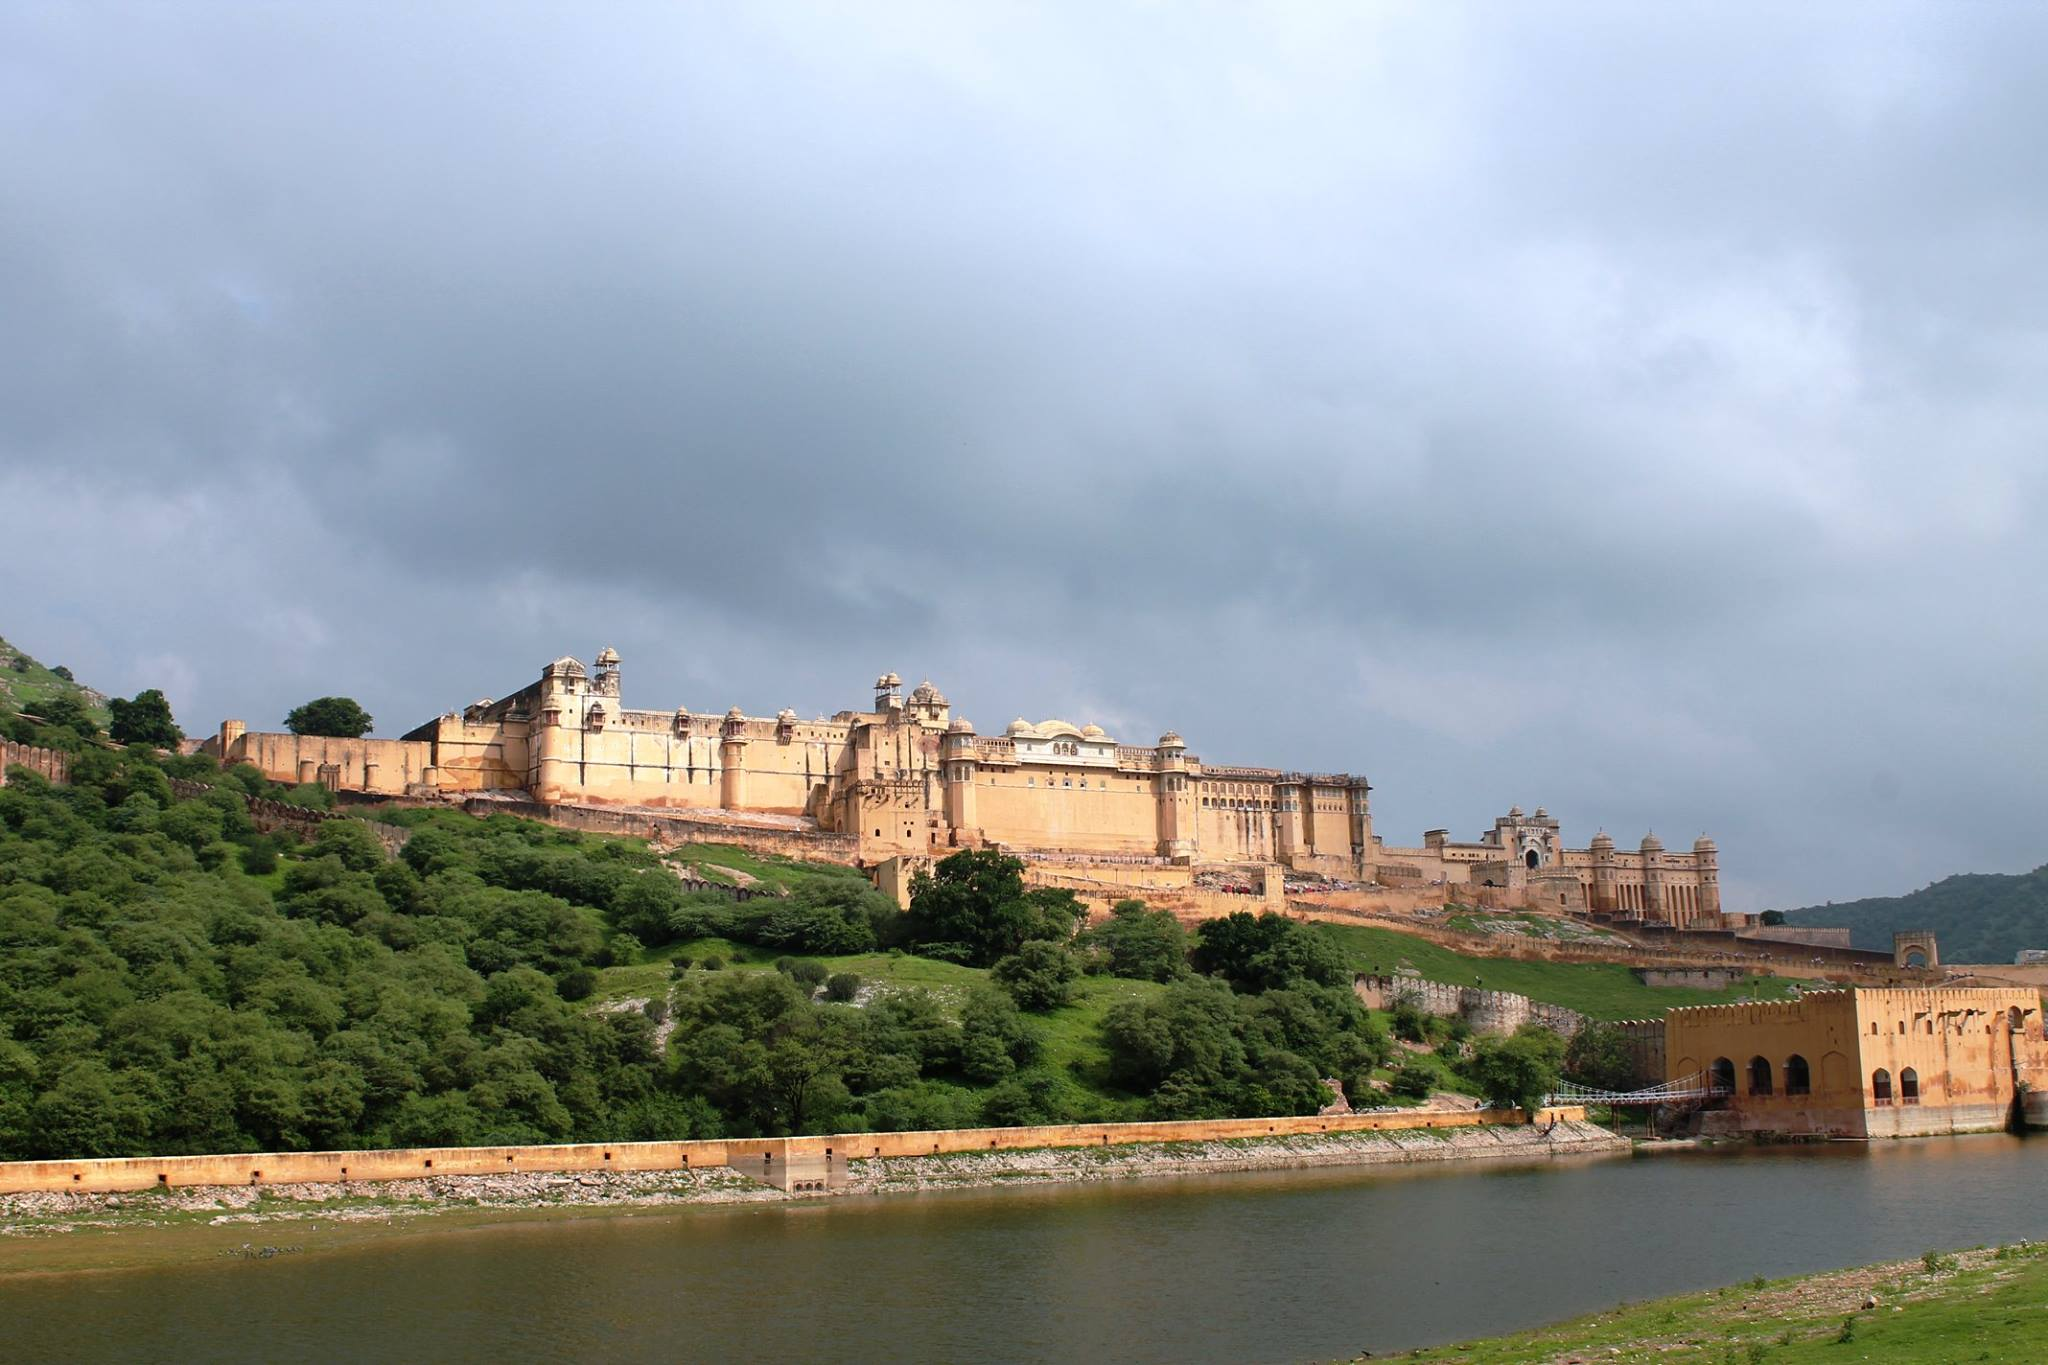 Amer Fort, Jaipur Stands majestic over a reflecting moat with sashaying elephants and mirrored halls